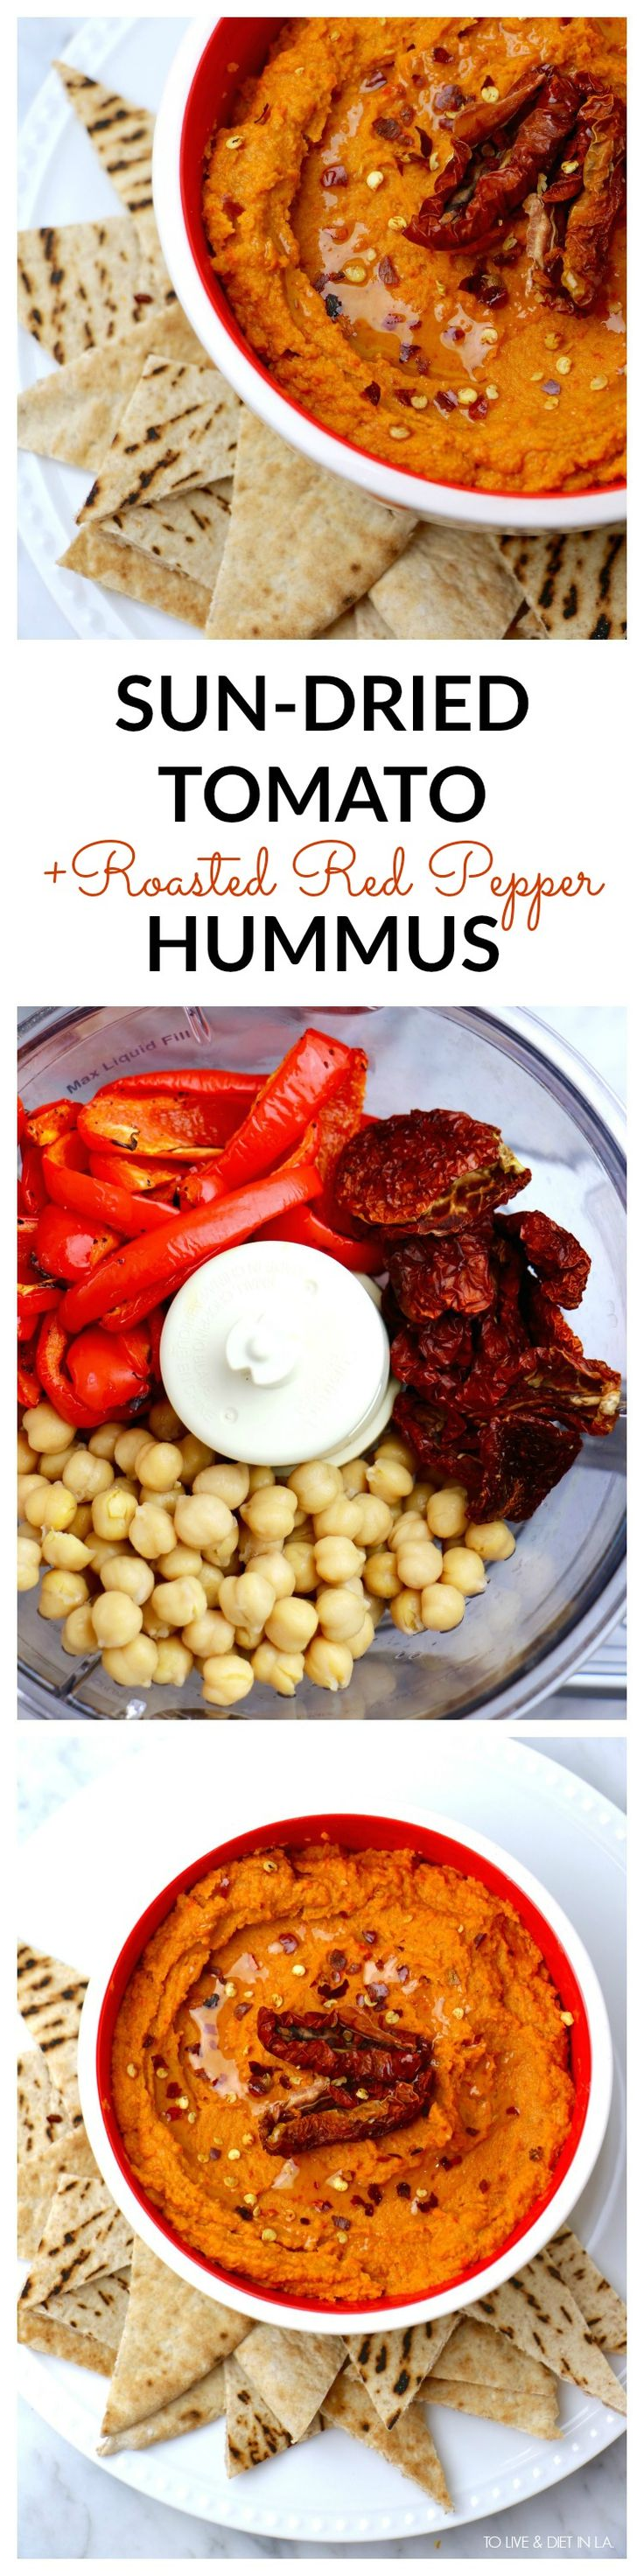 Roasted Red Pepper + Sun Dried Tomato Hummus - easy, healthy, homemade hummus with a TON of flavor! Sweet + slightly spicy and packed with nutritious whole food ingredients #hummus #healthyrecipes(Healthy Recipes Appetizers)